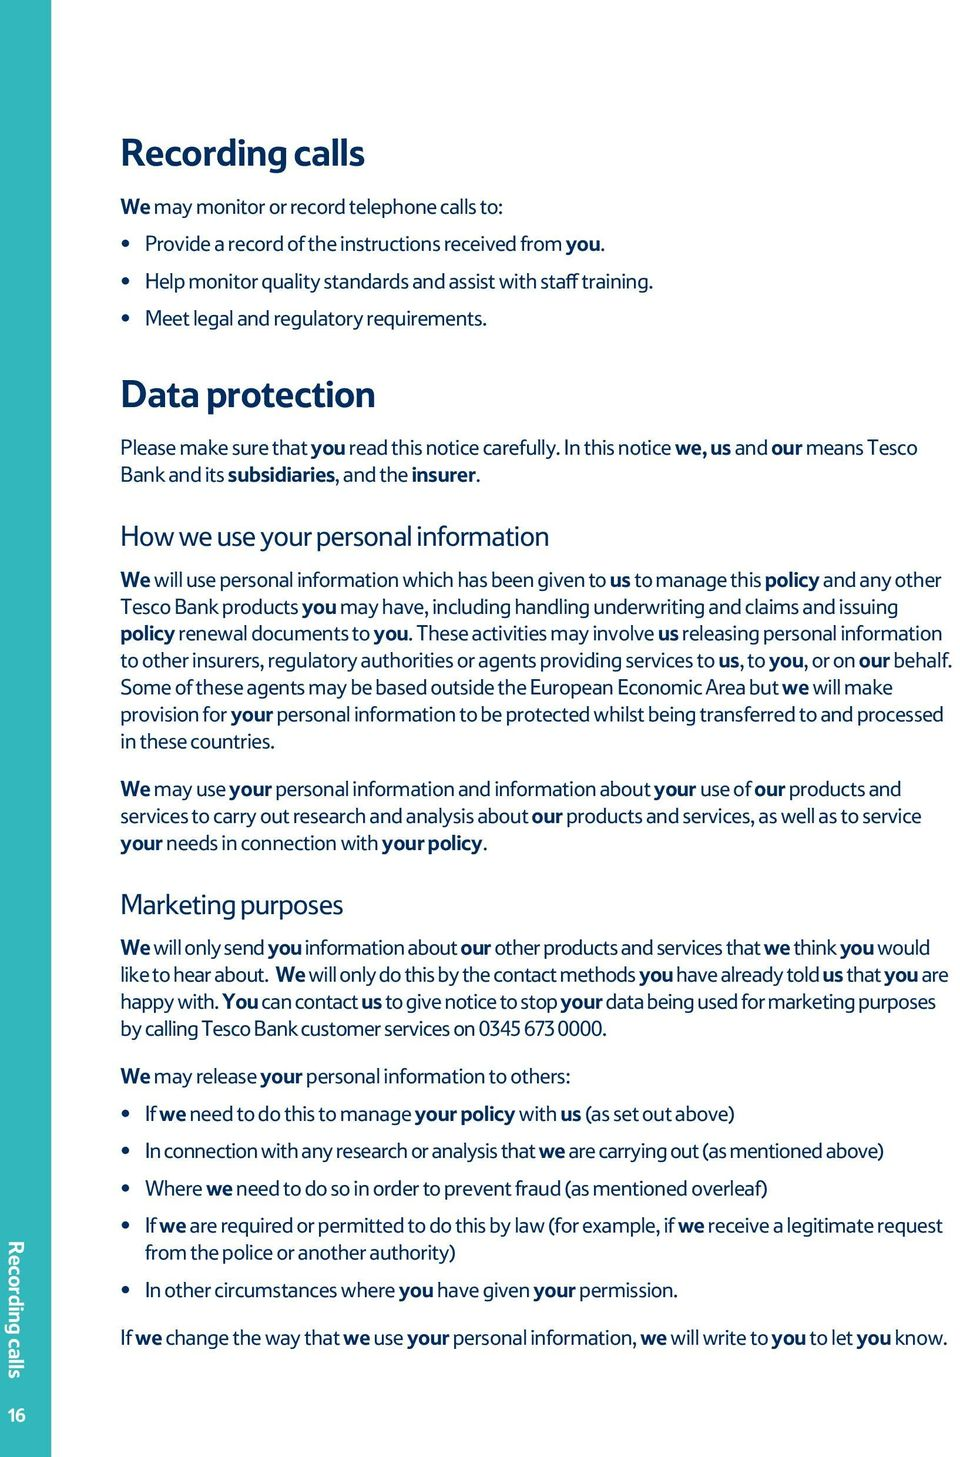 How we use your personal information We will use personal information which has been given to us to manage this policy and any other Tesco Bank products you may have, including handling underwriting